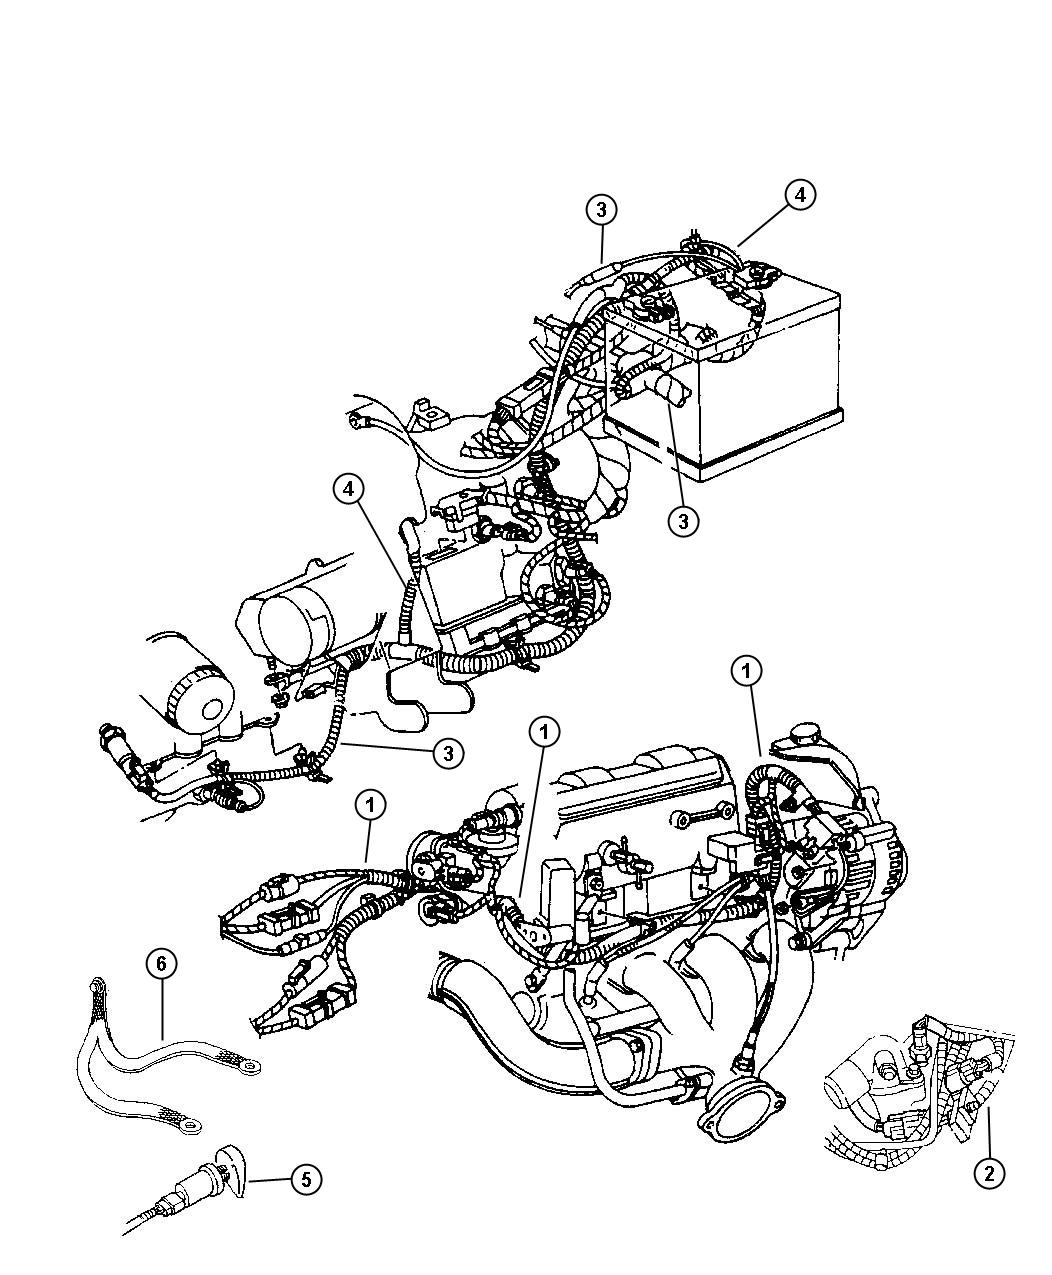 2001 Dodge Intrepid Wiring-Engine and Related Parts